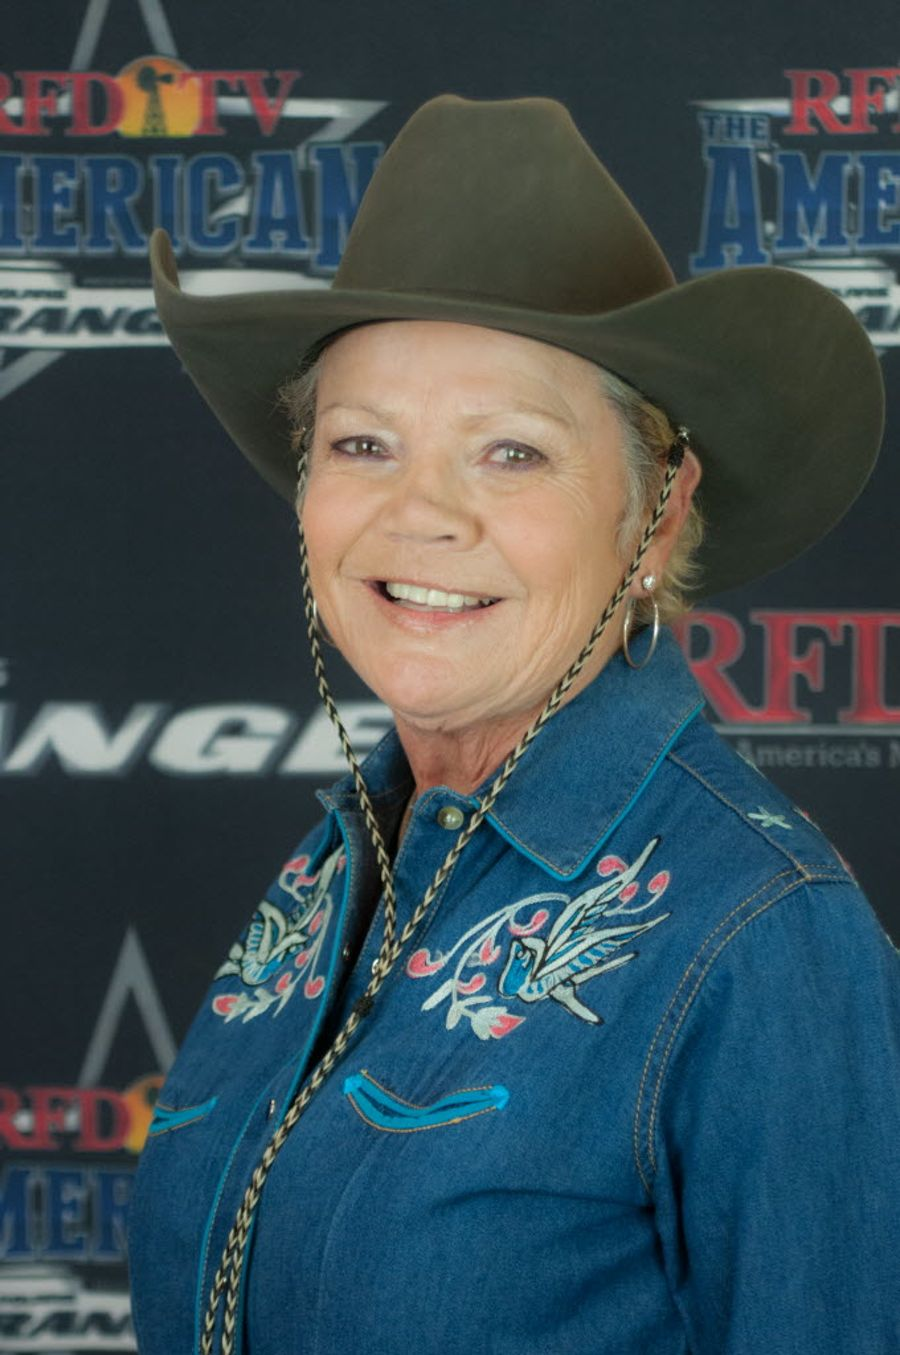 Mary Donna Smothers, 69, will compete against an elite field of barrel racers at Sunday's third RFD-TV The American rodeo with a chance at winning $1.1 million.  Photo by Lesil Groves